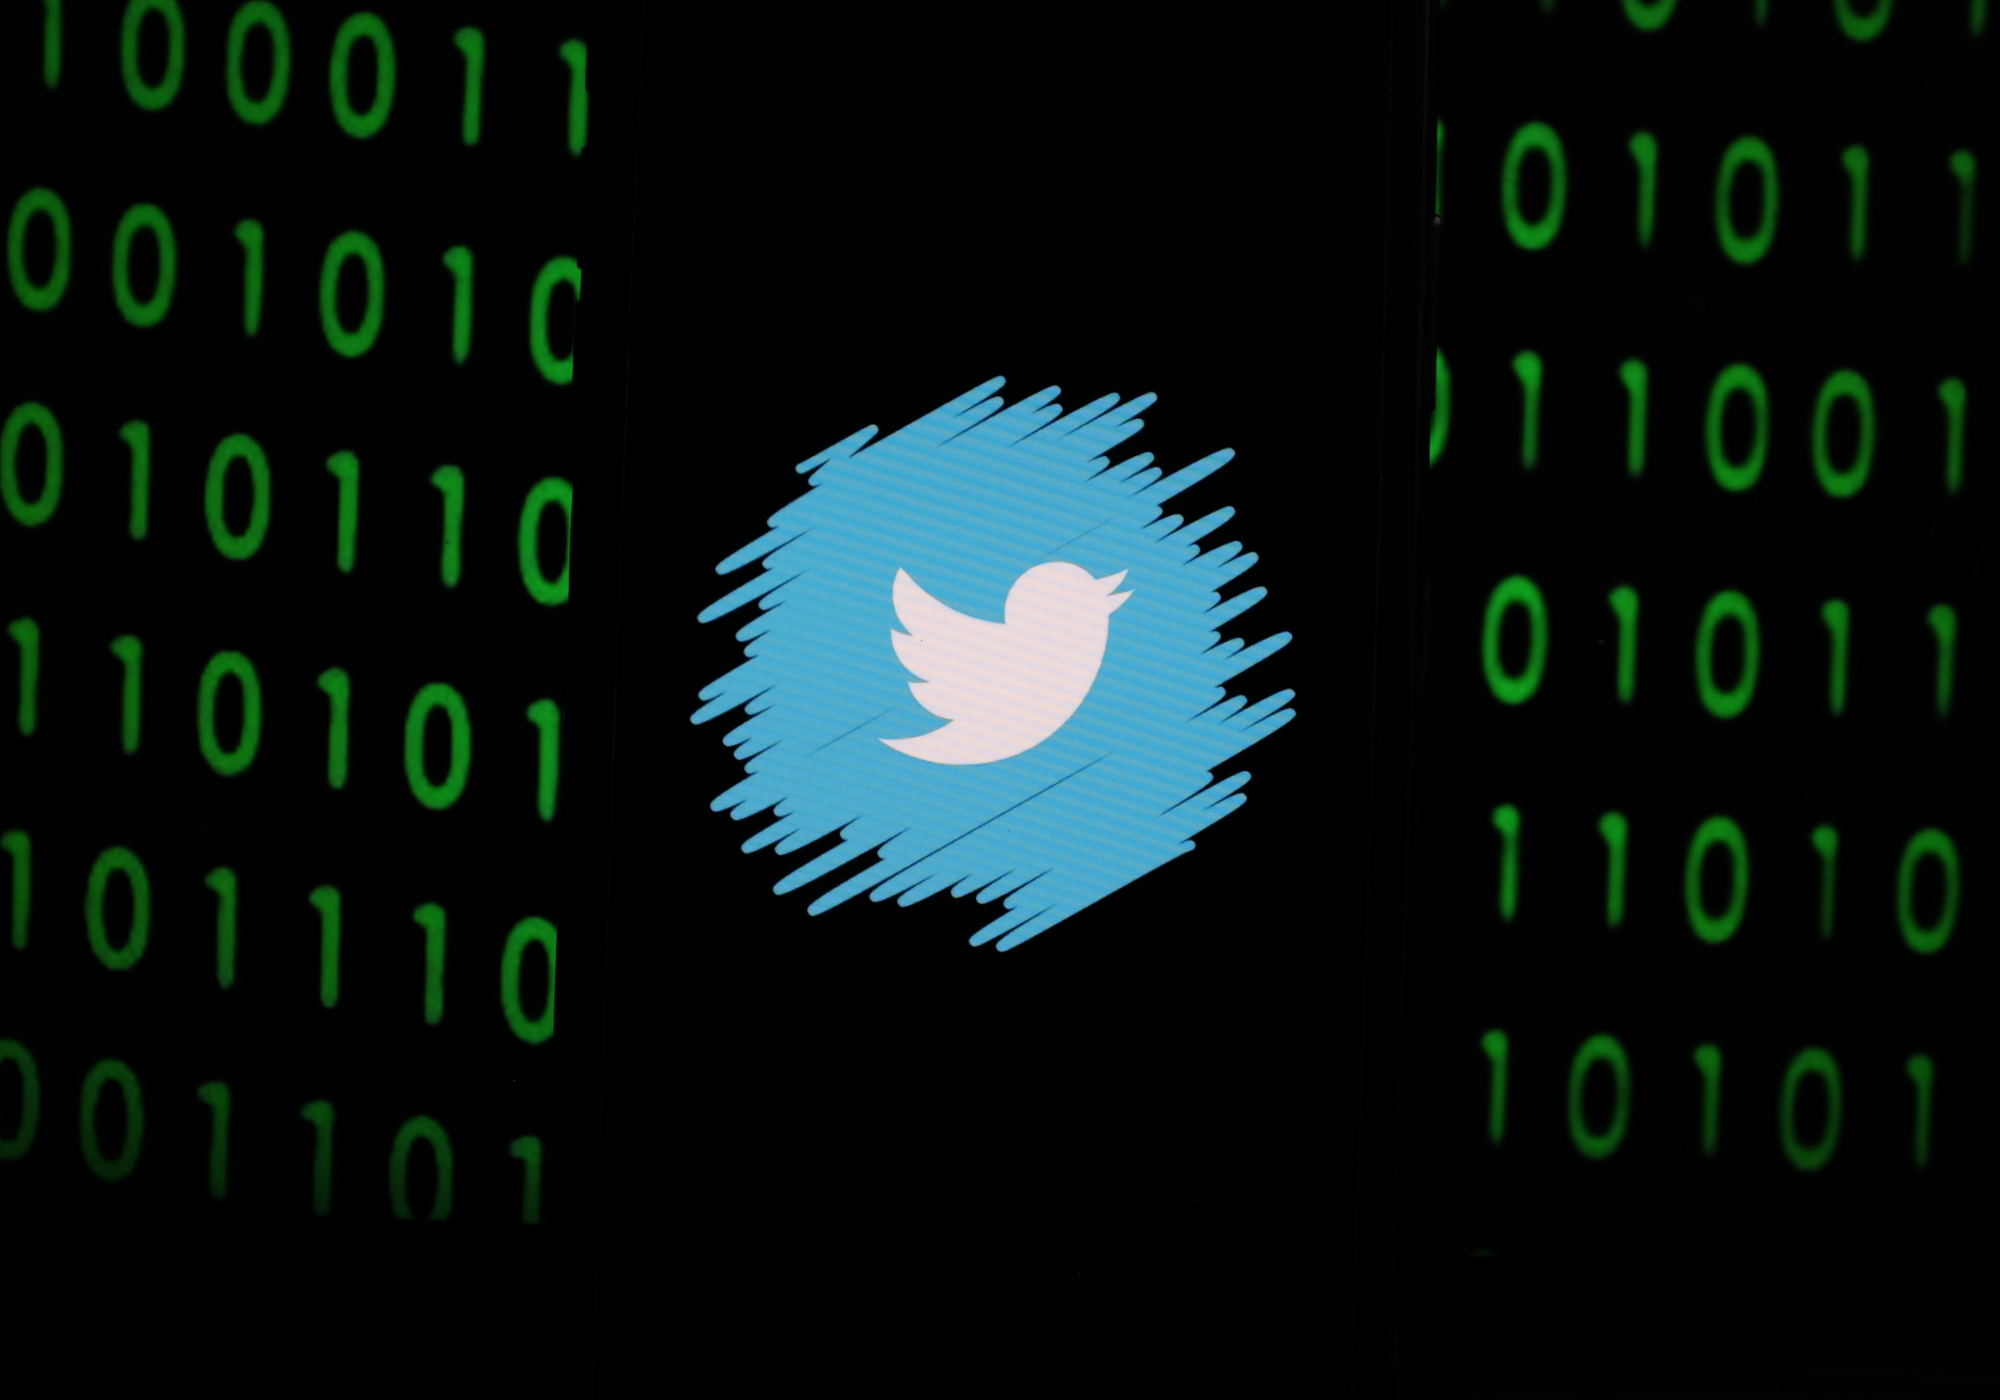 Twitter hack: The facts, theories and fallout of the Bitcoin heist